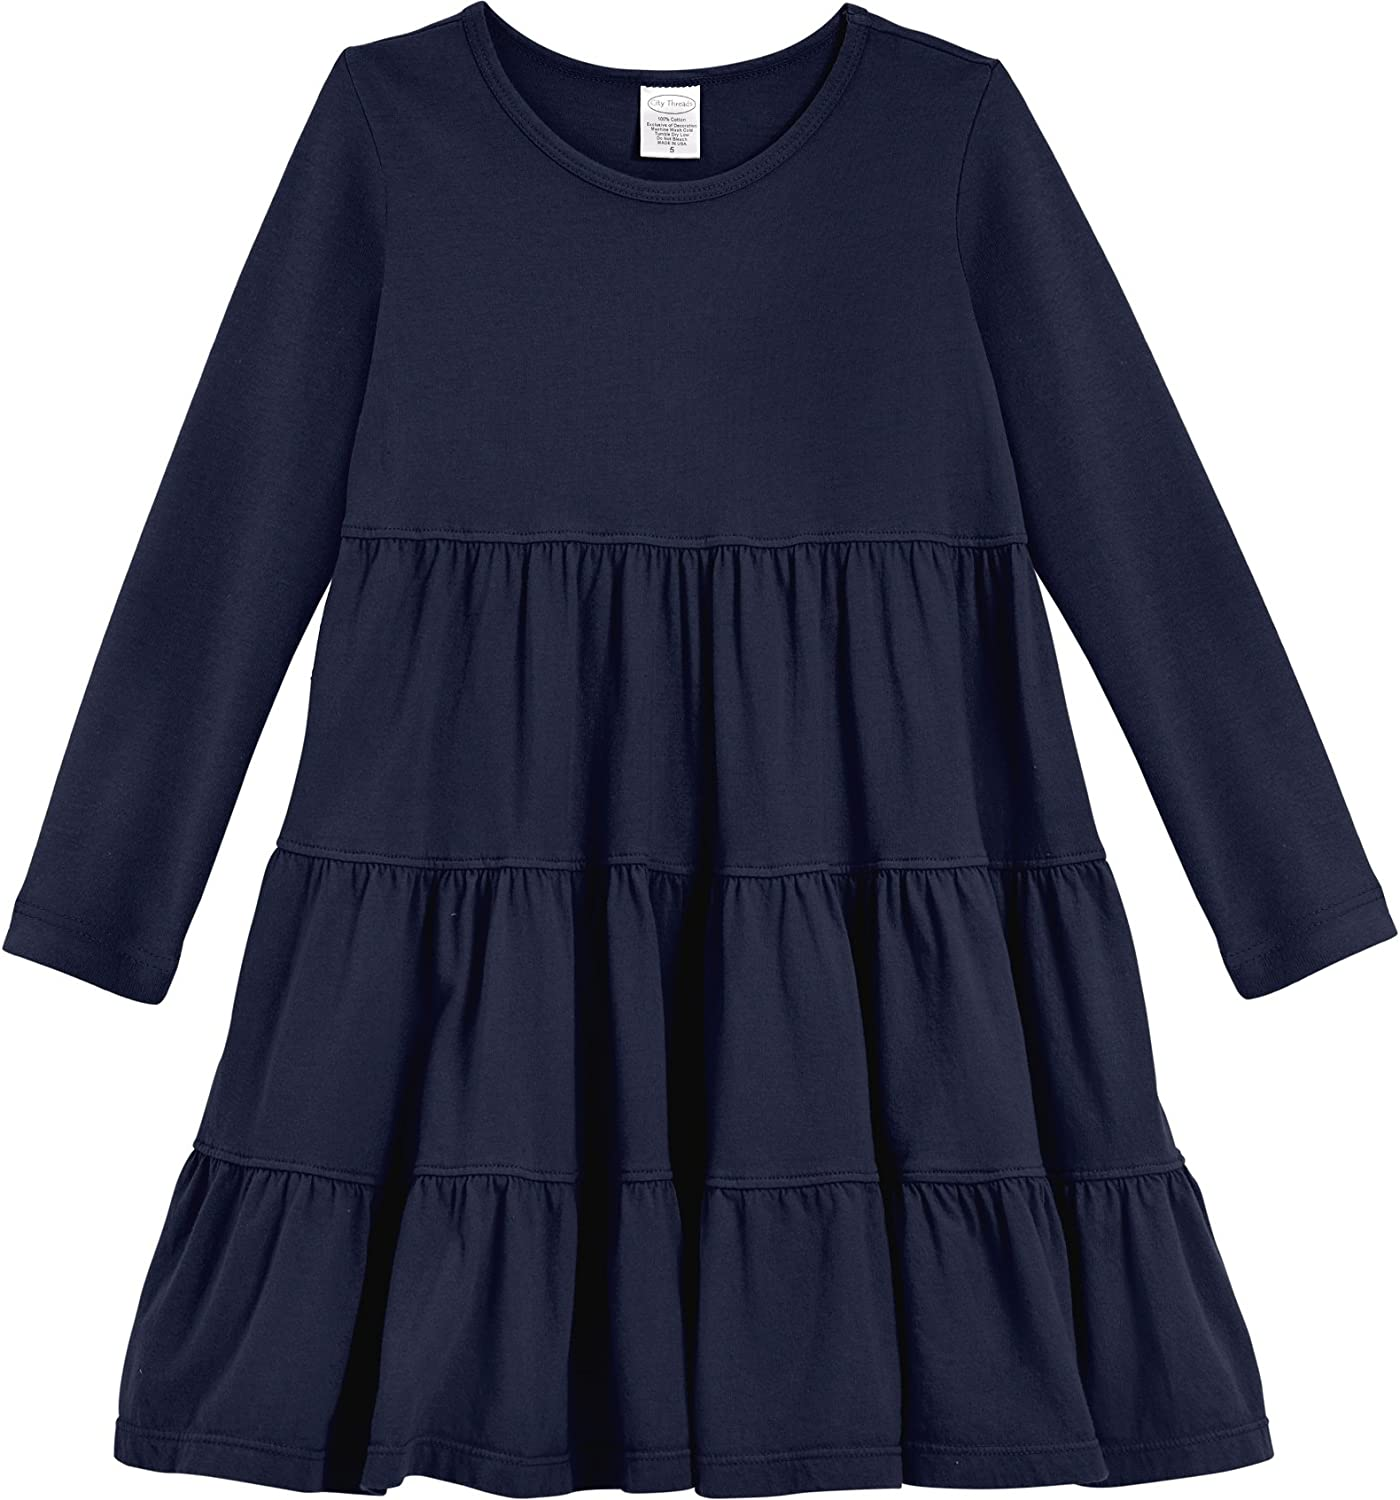 City Threads Girls' Super Soft SEAL limited product Cotton Long P Sleeve Dress Fees free!! Tiered